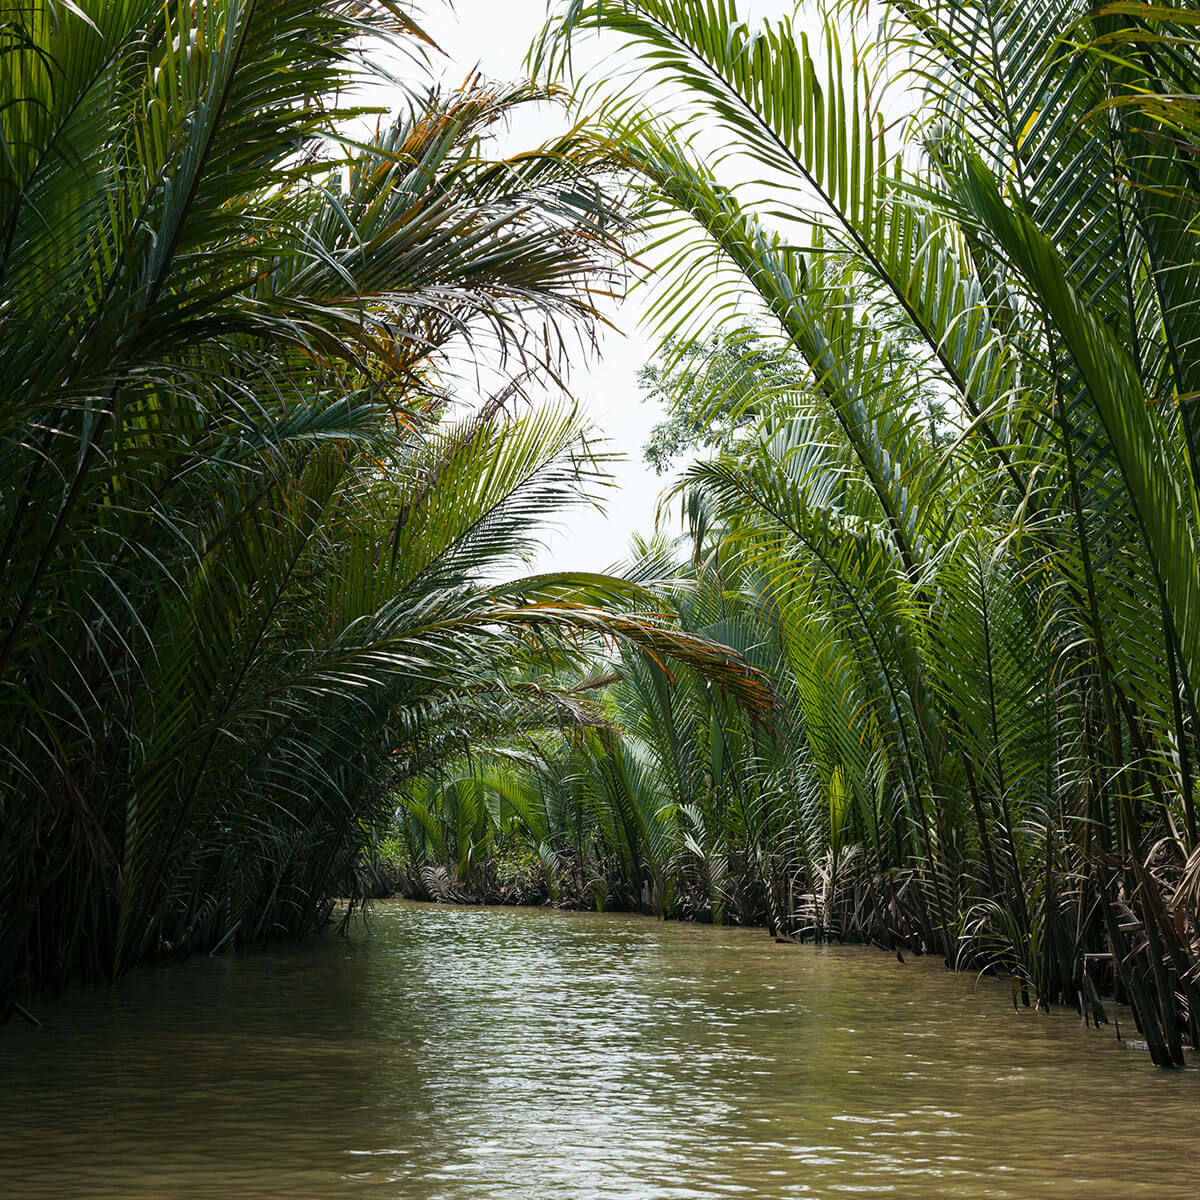 Waterway surrounded by lush greenery